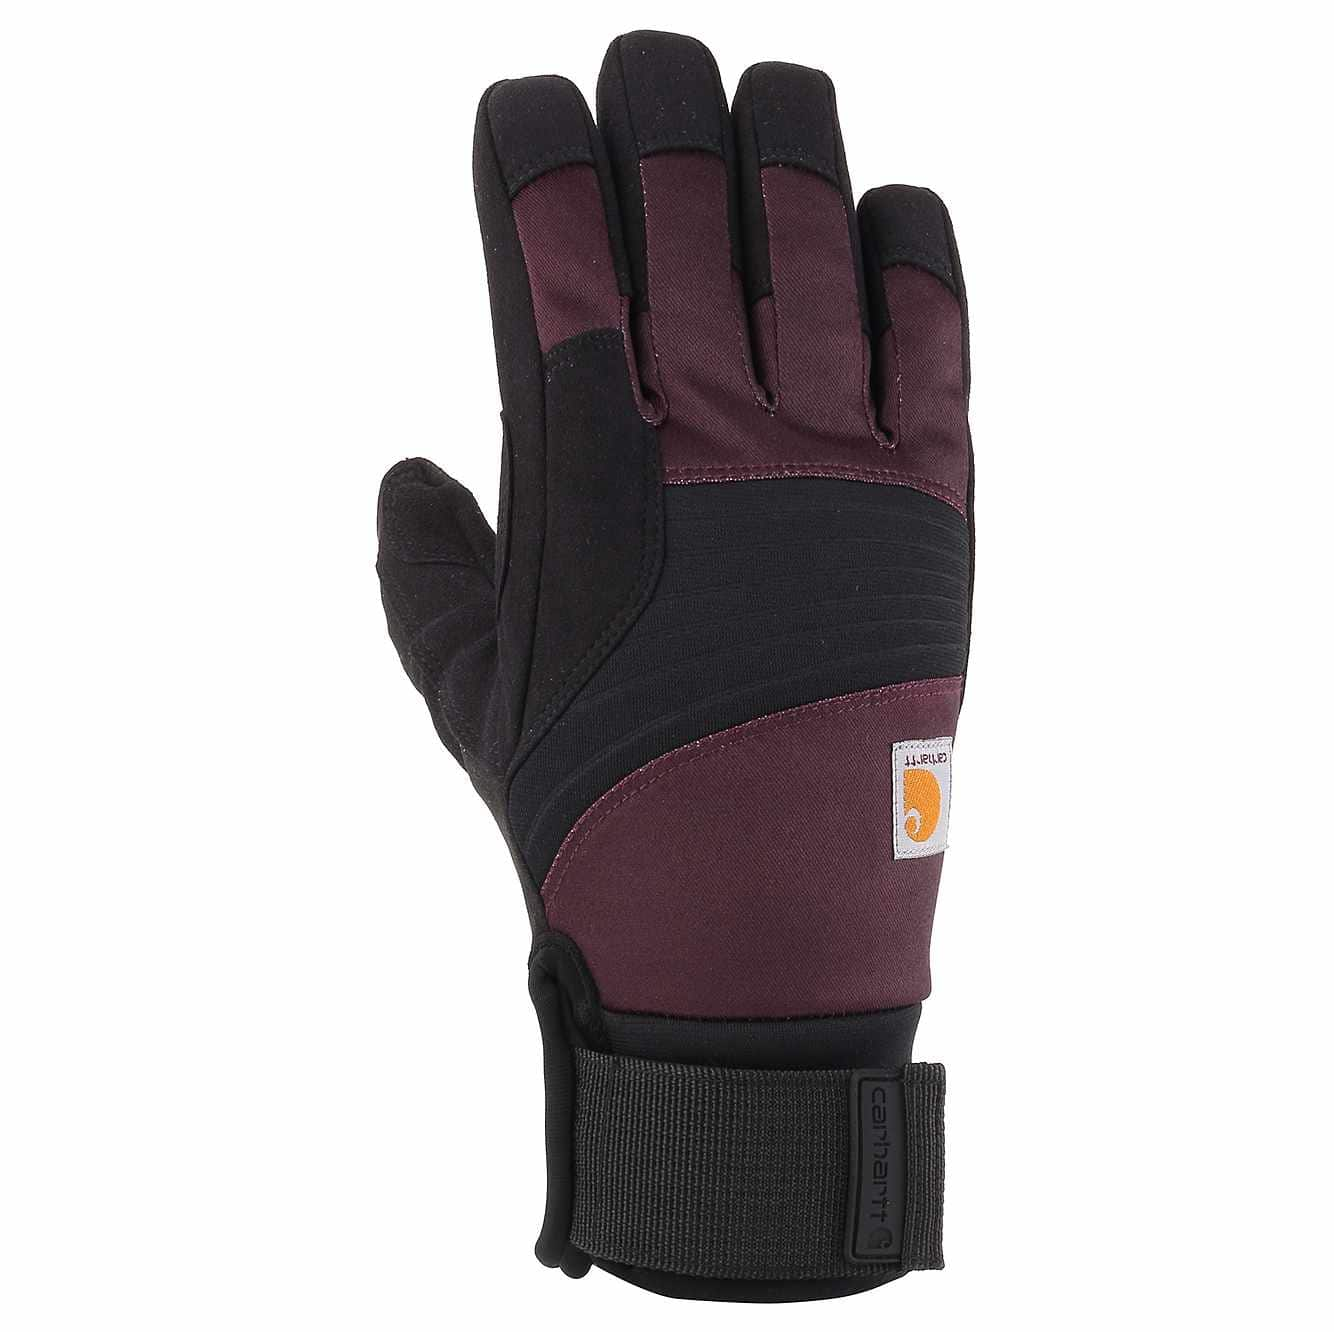 Picture of Stoker Insulated Glove in Deep Wine